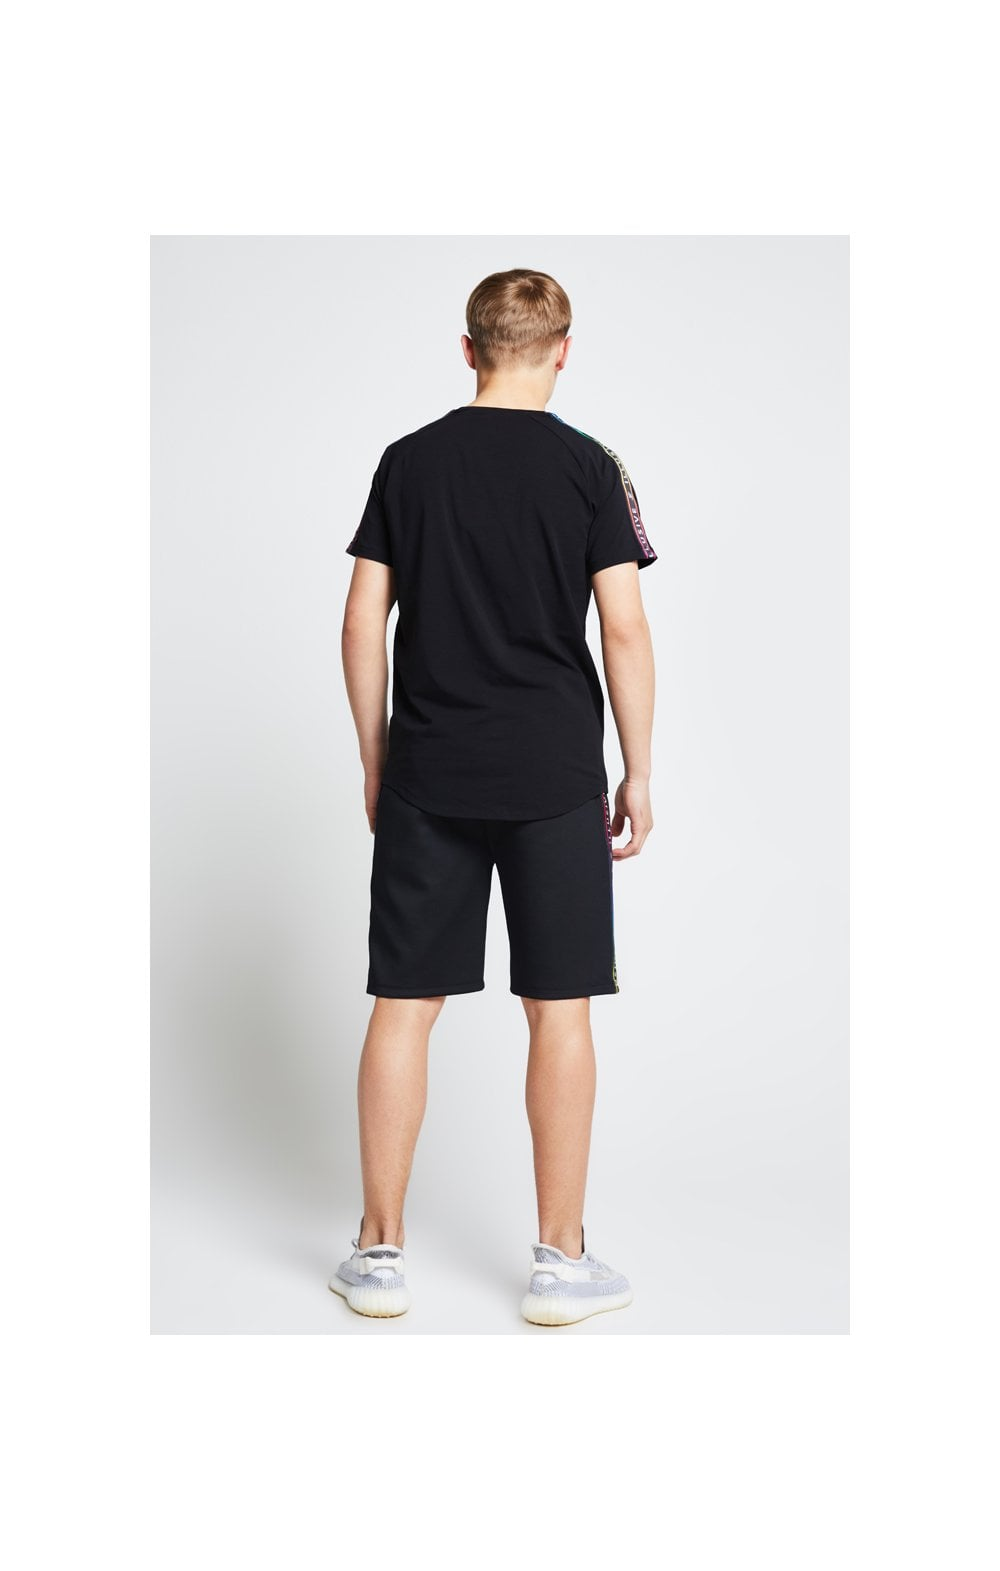 Illusive London Tape Jersey Shorts - Black (6)